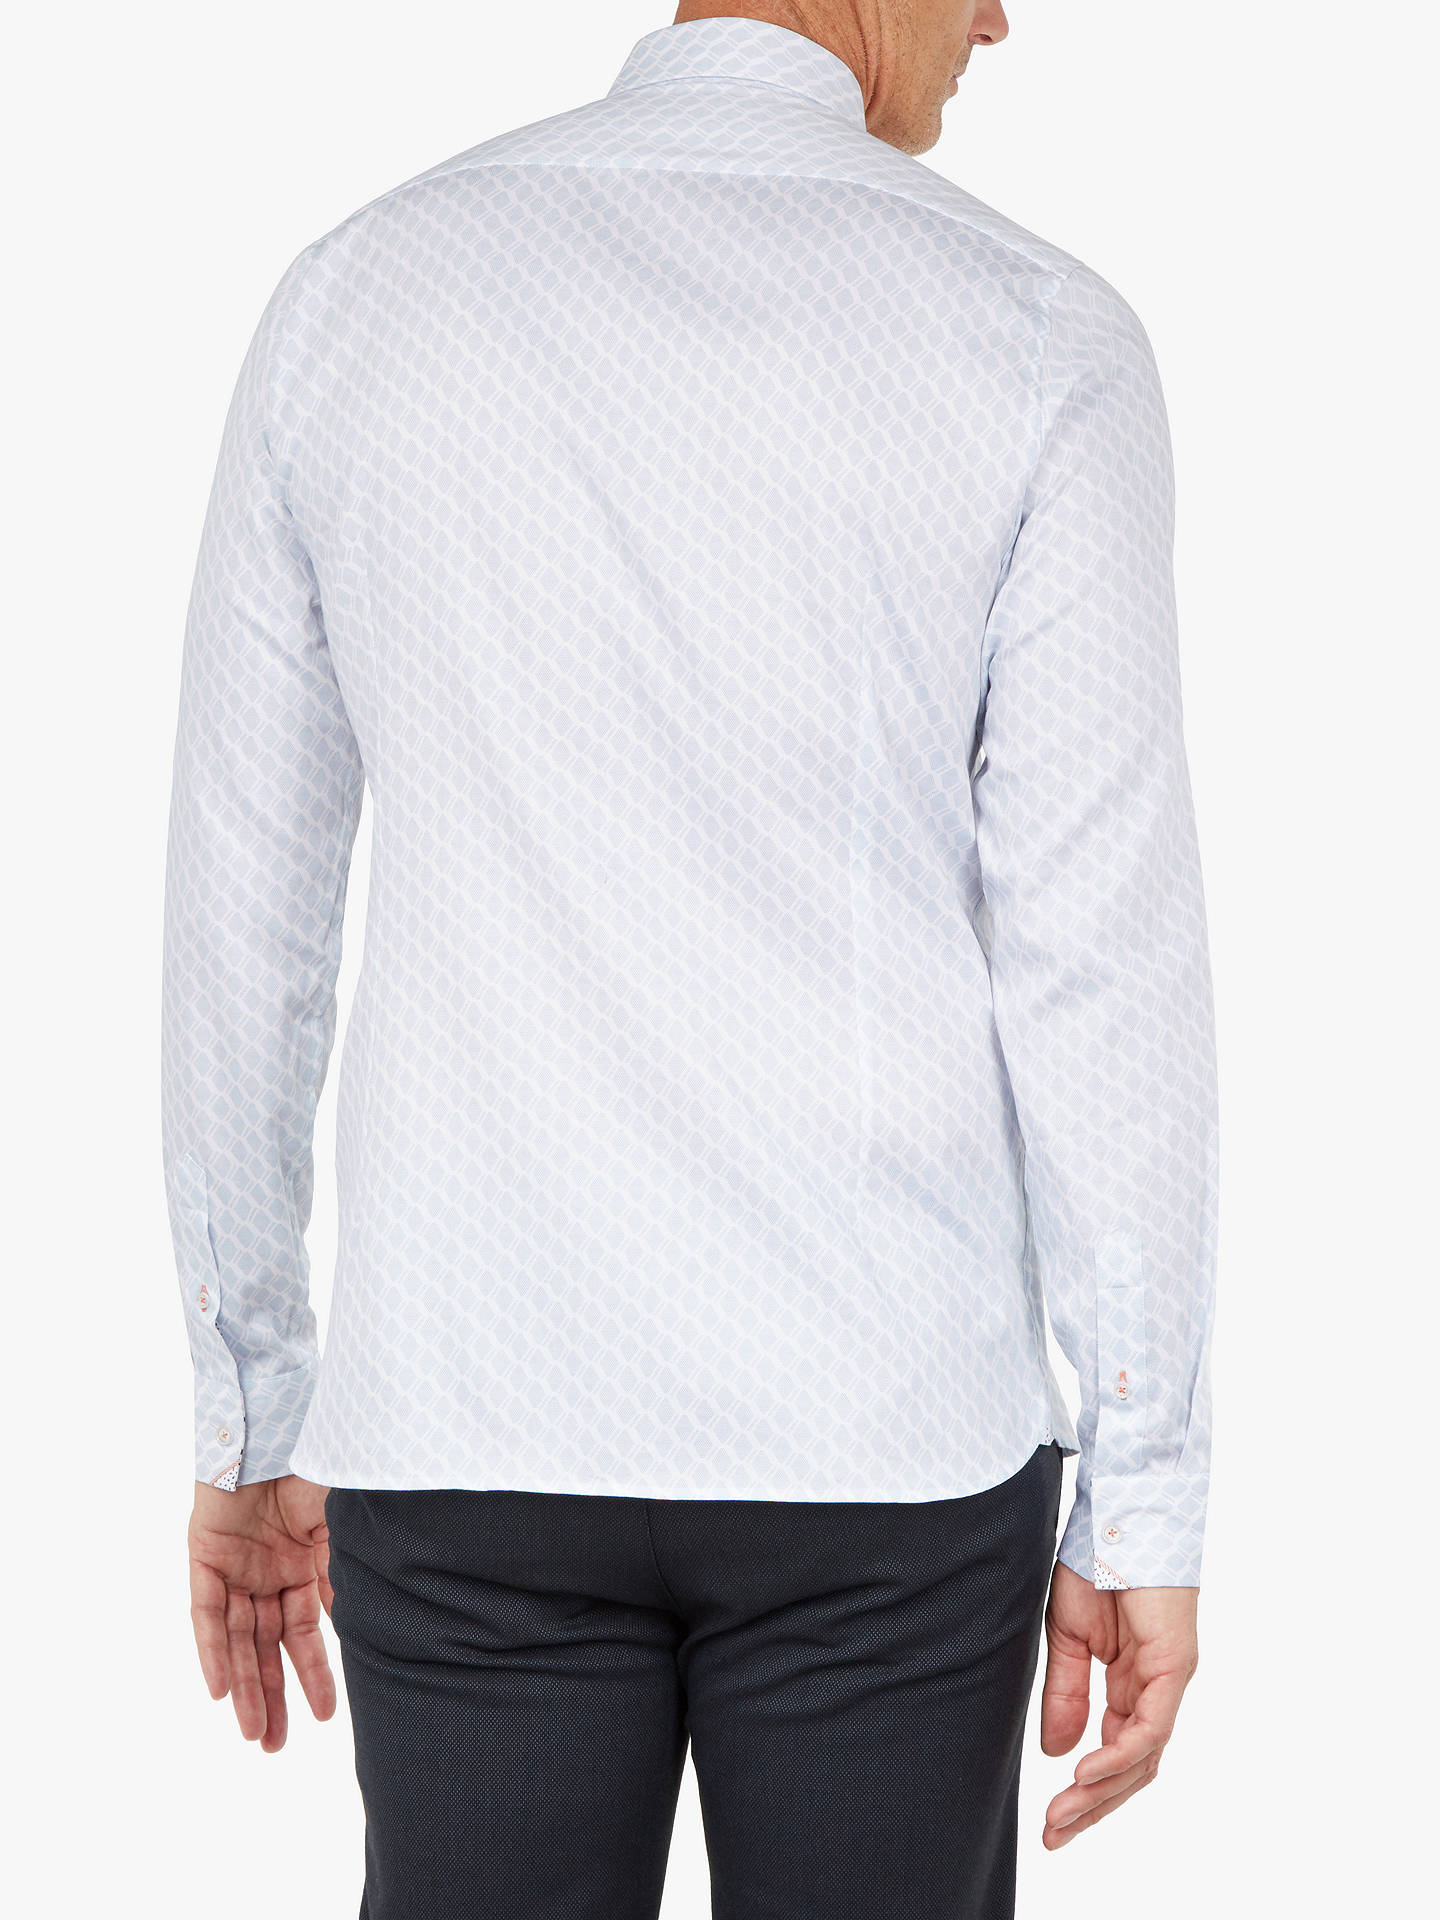 BuyTed Baker T for Tall Pimlico Long Sleeve Geometric Shirt, Mid Blue, 15.5 Online at johnlewis.com